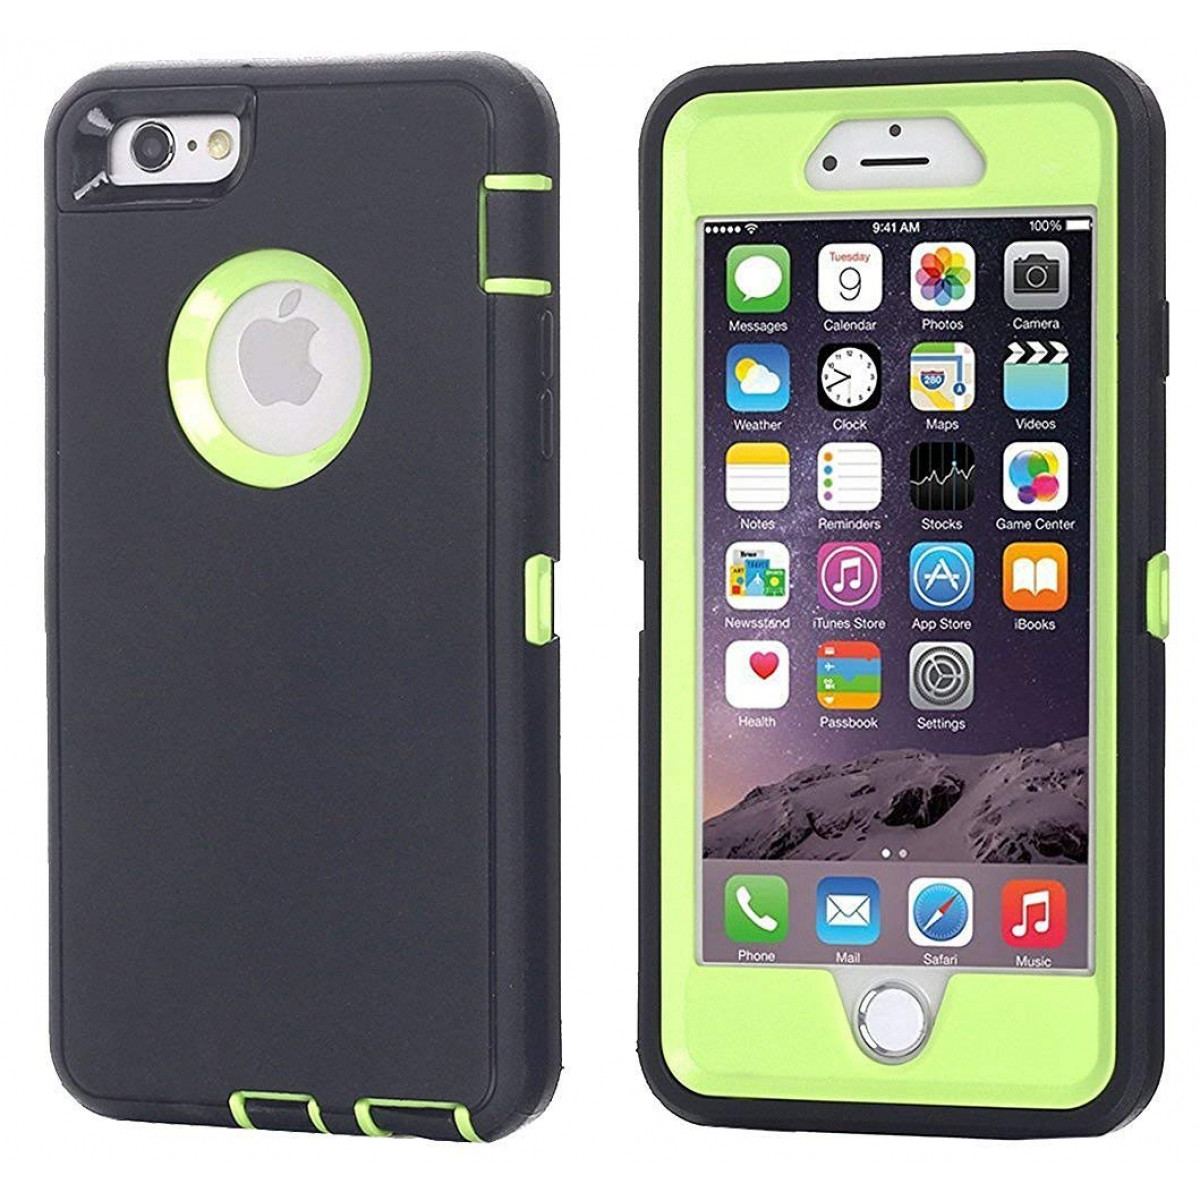 on sale b993f fccc9 iPhone 6 Case, iPhone 6S Case [Heavy Duty] AICase Built-in Screen Protector  Tough 3 in 1 Rugged Shorkproof Cover for Apple iPhone 6/6S (Green with ...